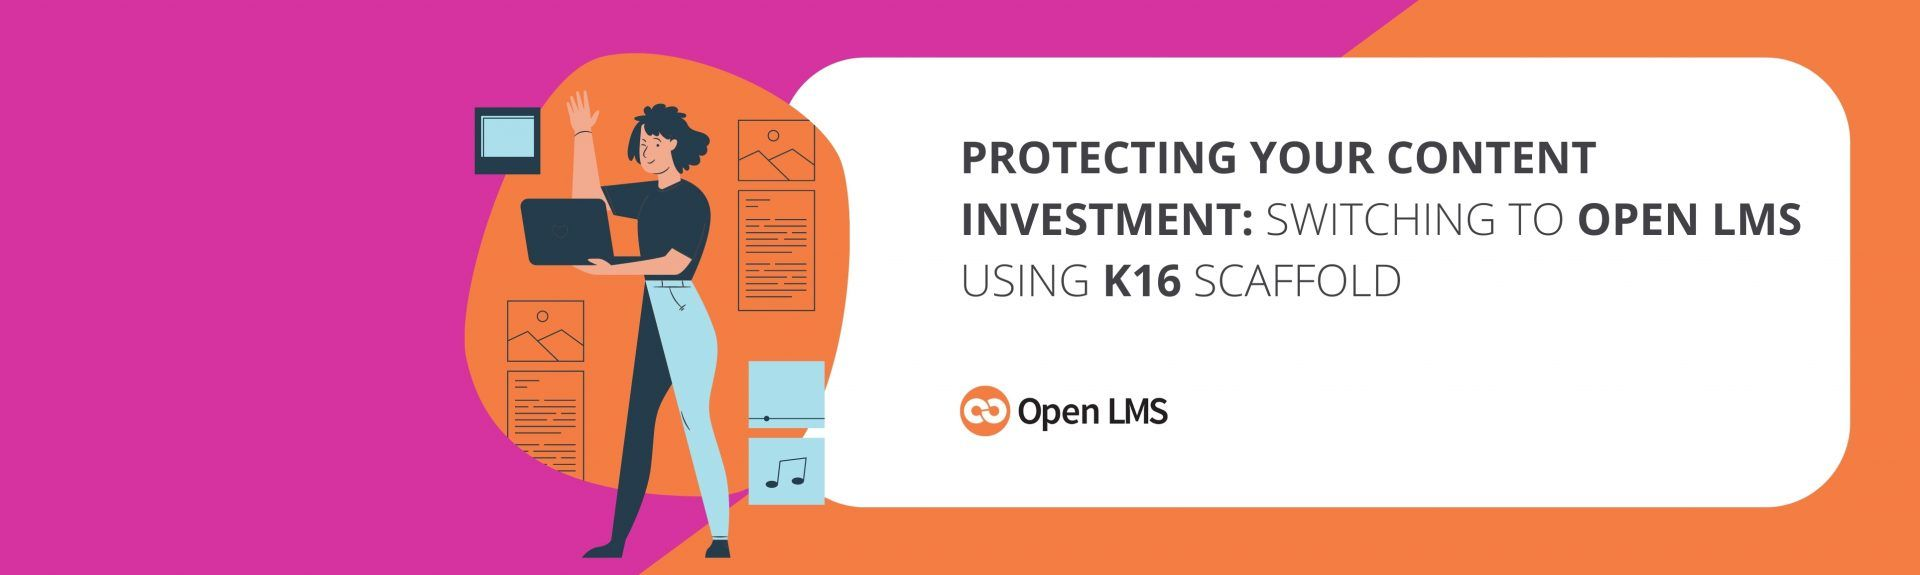 Protecting Your Content Investment: Switching to Open LMS Using K16 Scaffold